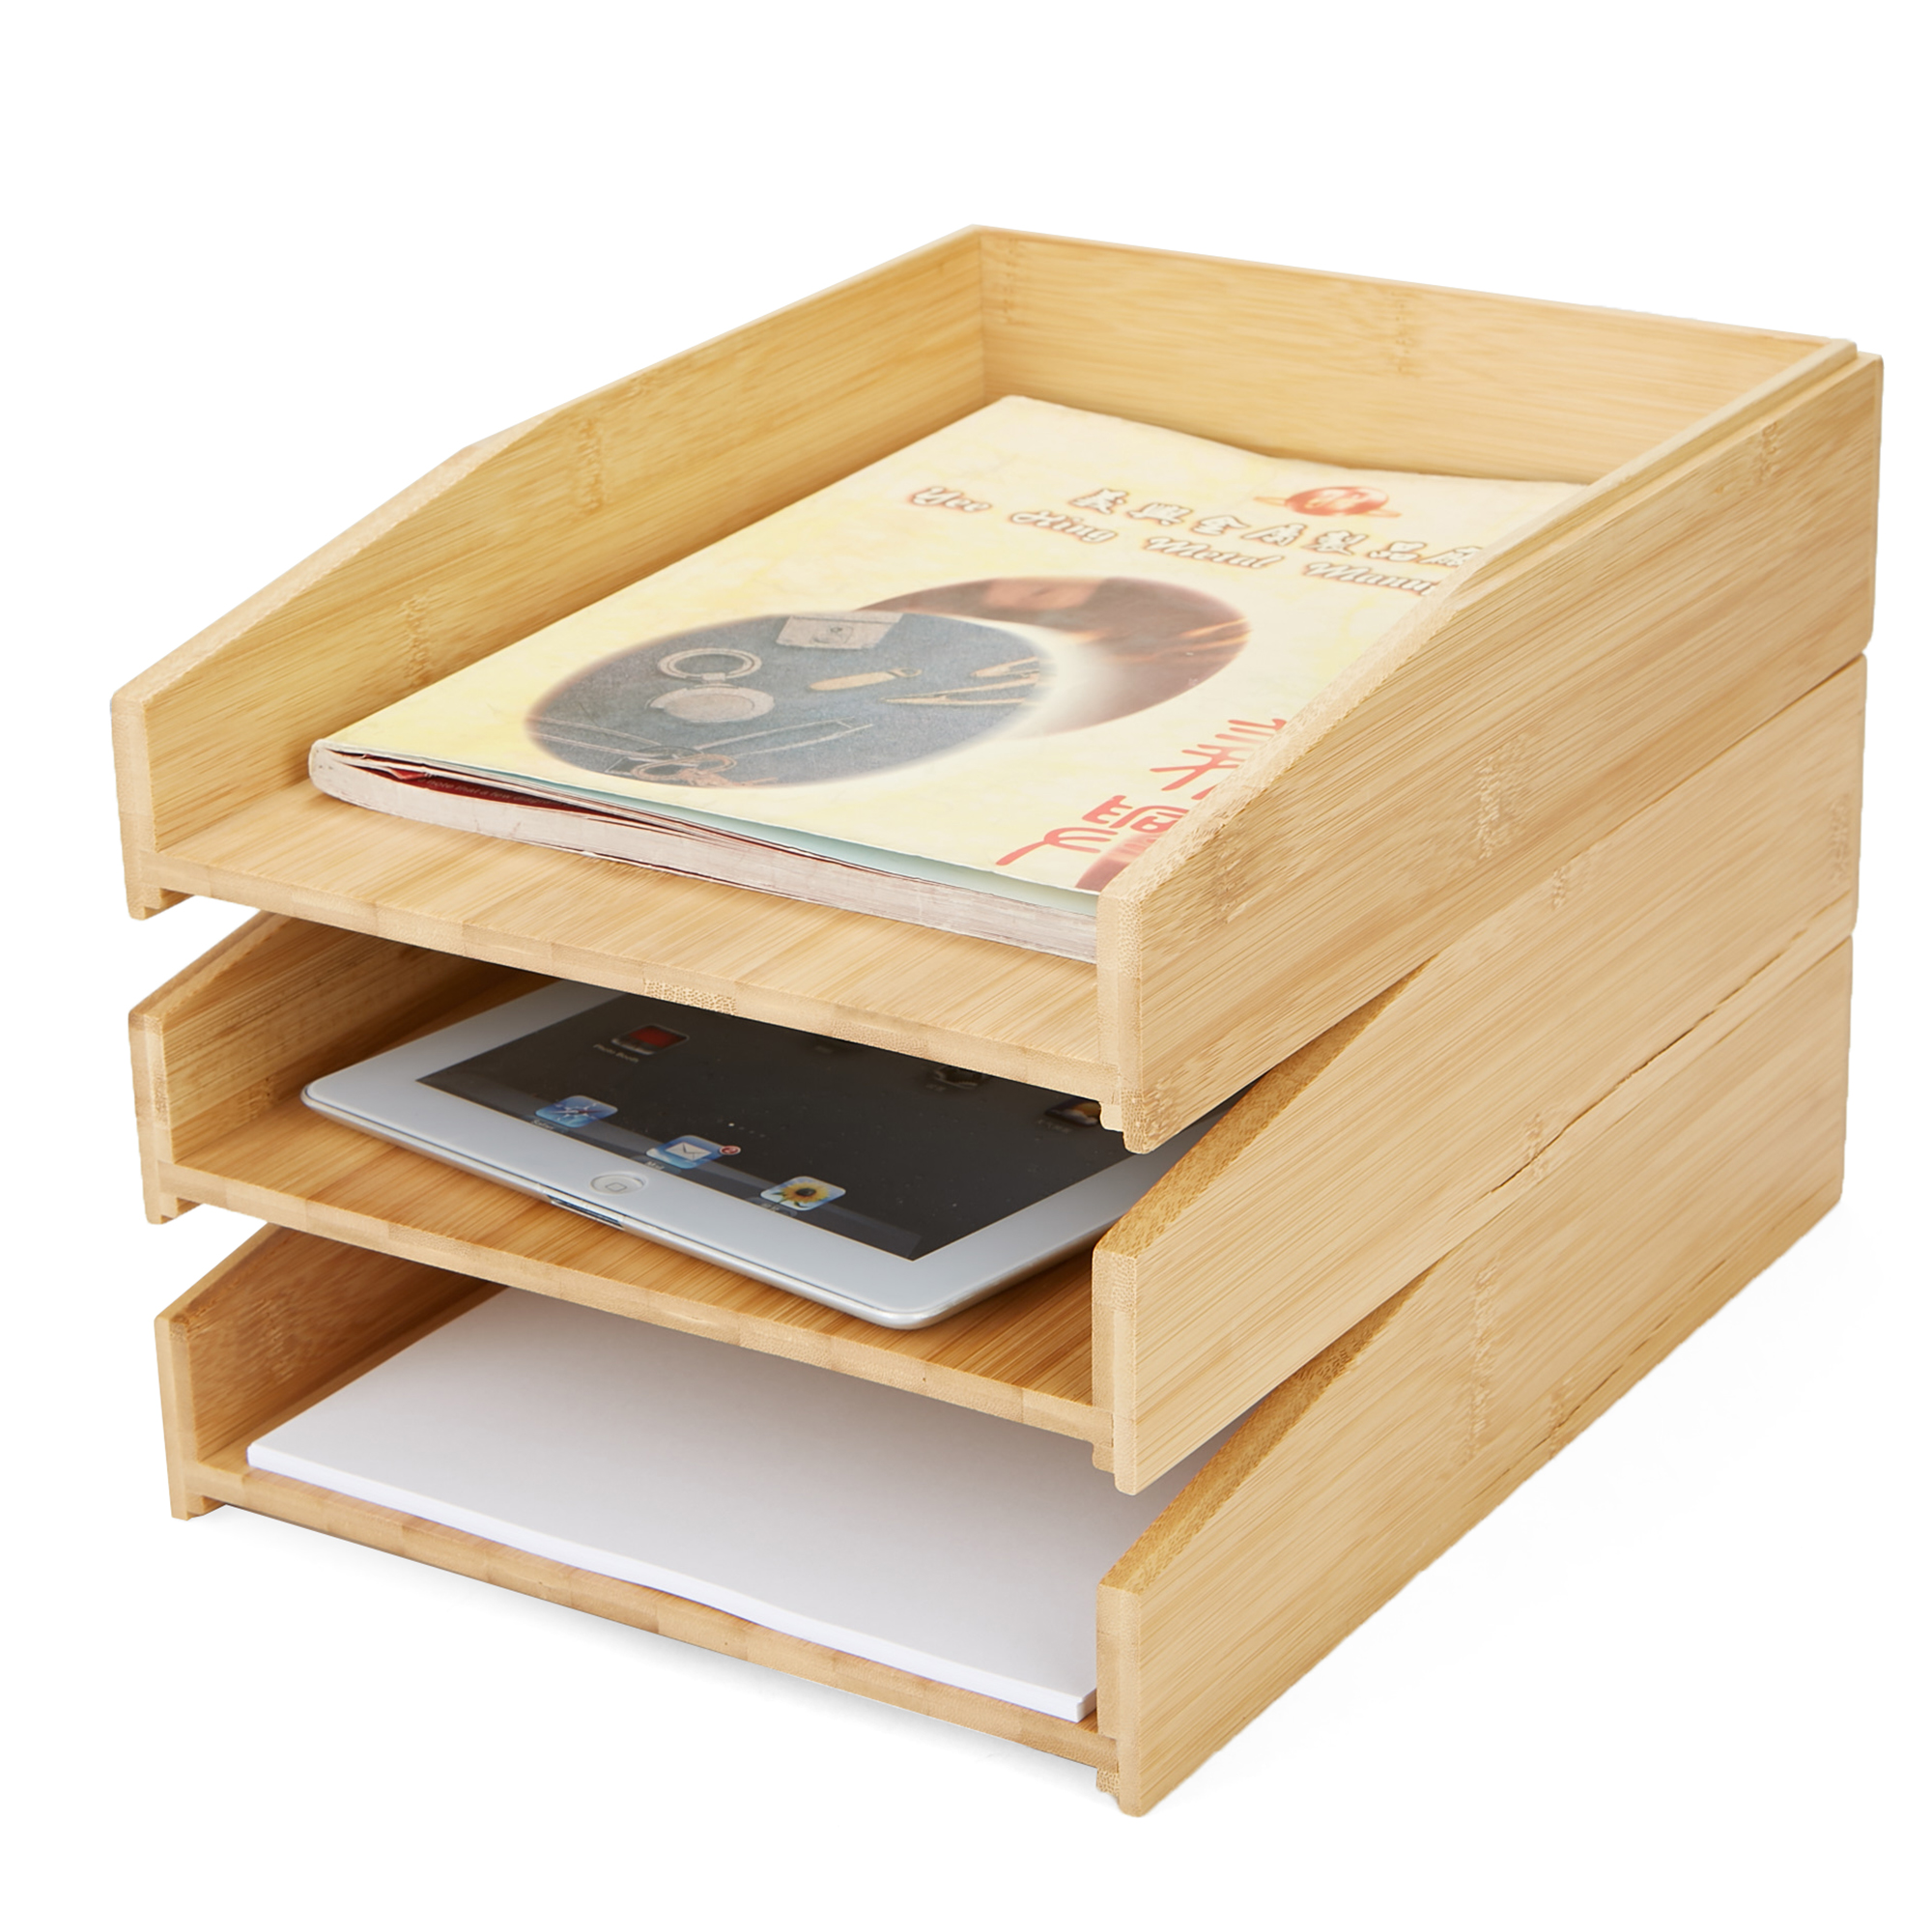 Mind Reader 3 Tier File Tray Organizer, Stackable Paper Tray, Document Letter Tray, Bamboo Environment Friendly File, Brown